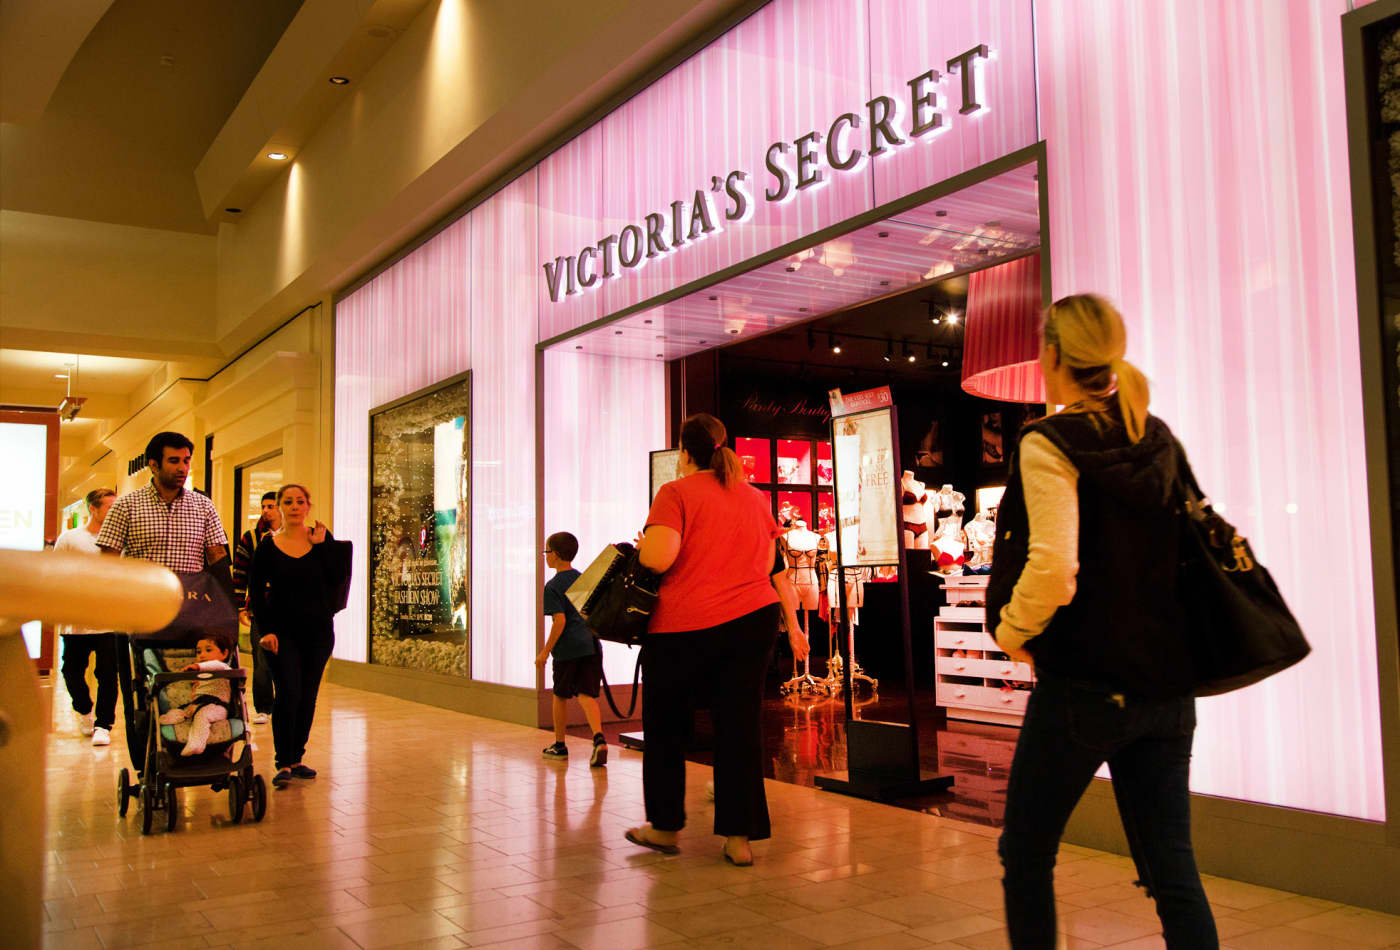 Victoria's Secret to go private in a deal that values the once-powerful lingerie brand at $1.1 billion